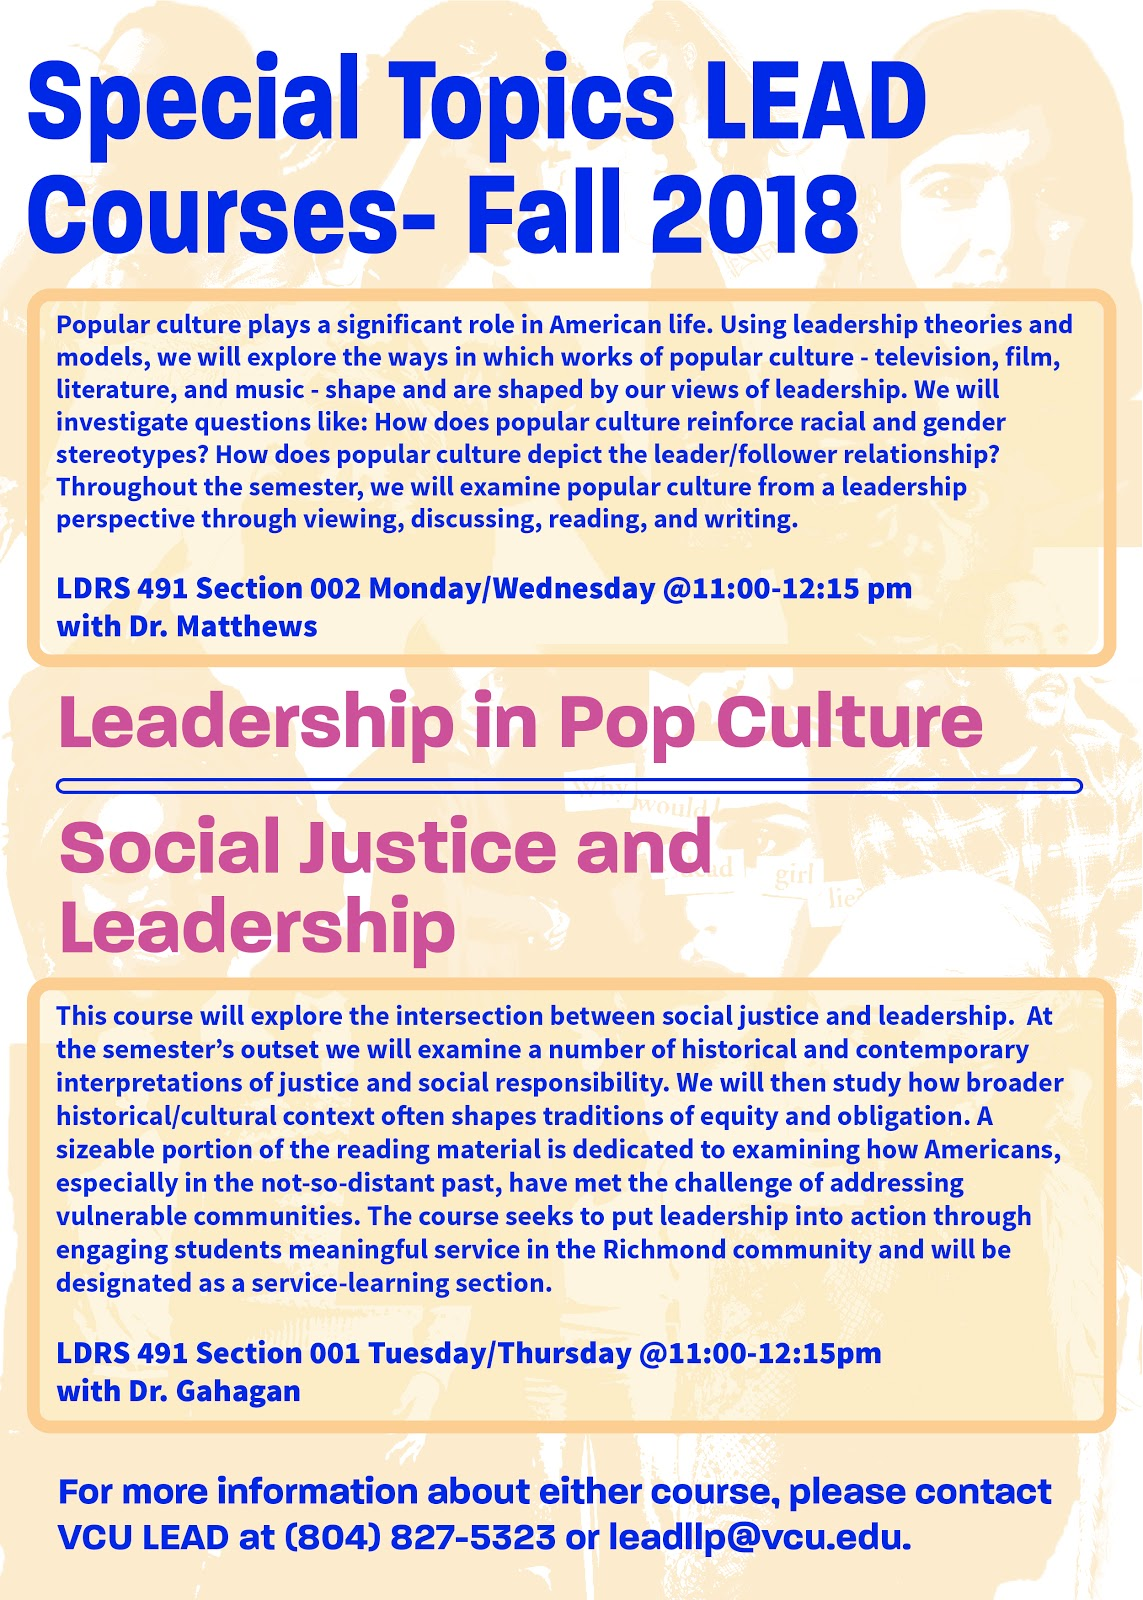 LDRS 491 Section 001 and 002 are open to all students!